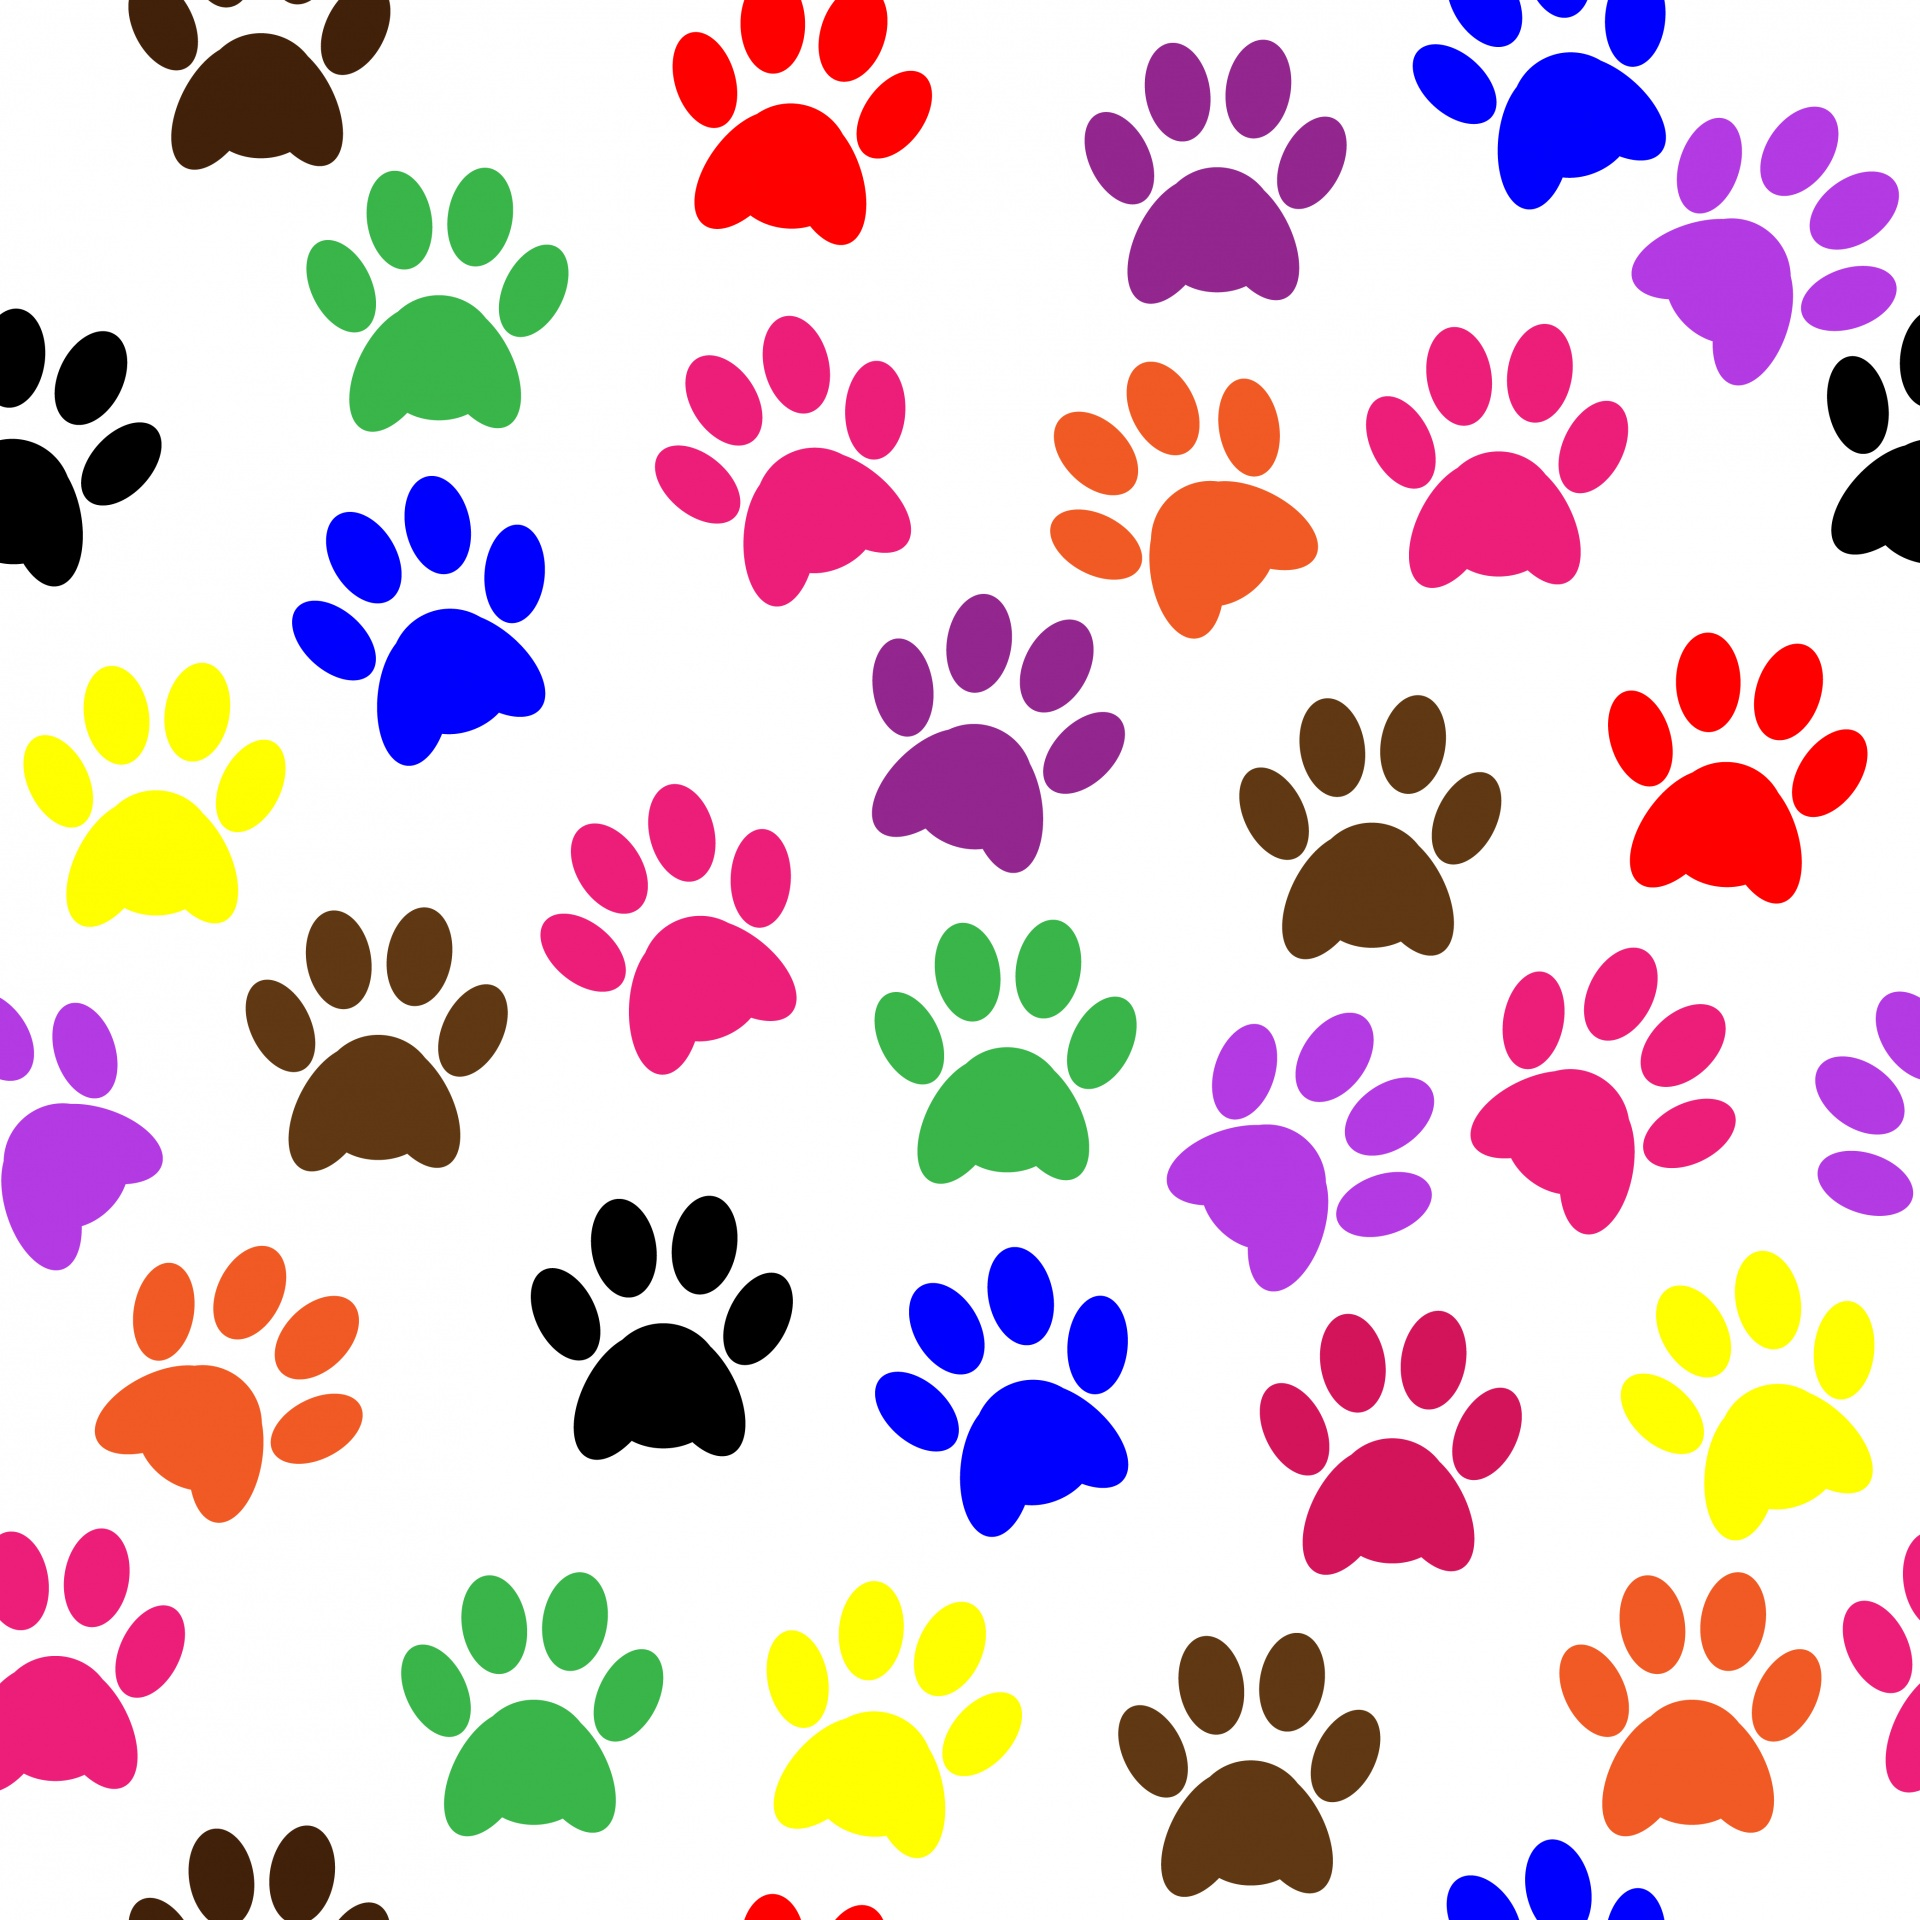 1920x1920 Dog Paw Print Vector 4657362